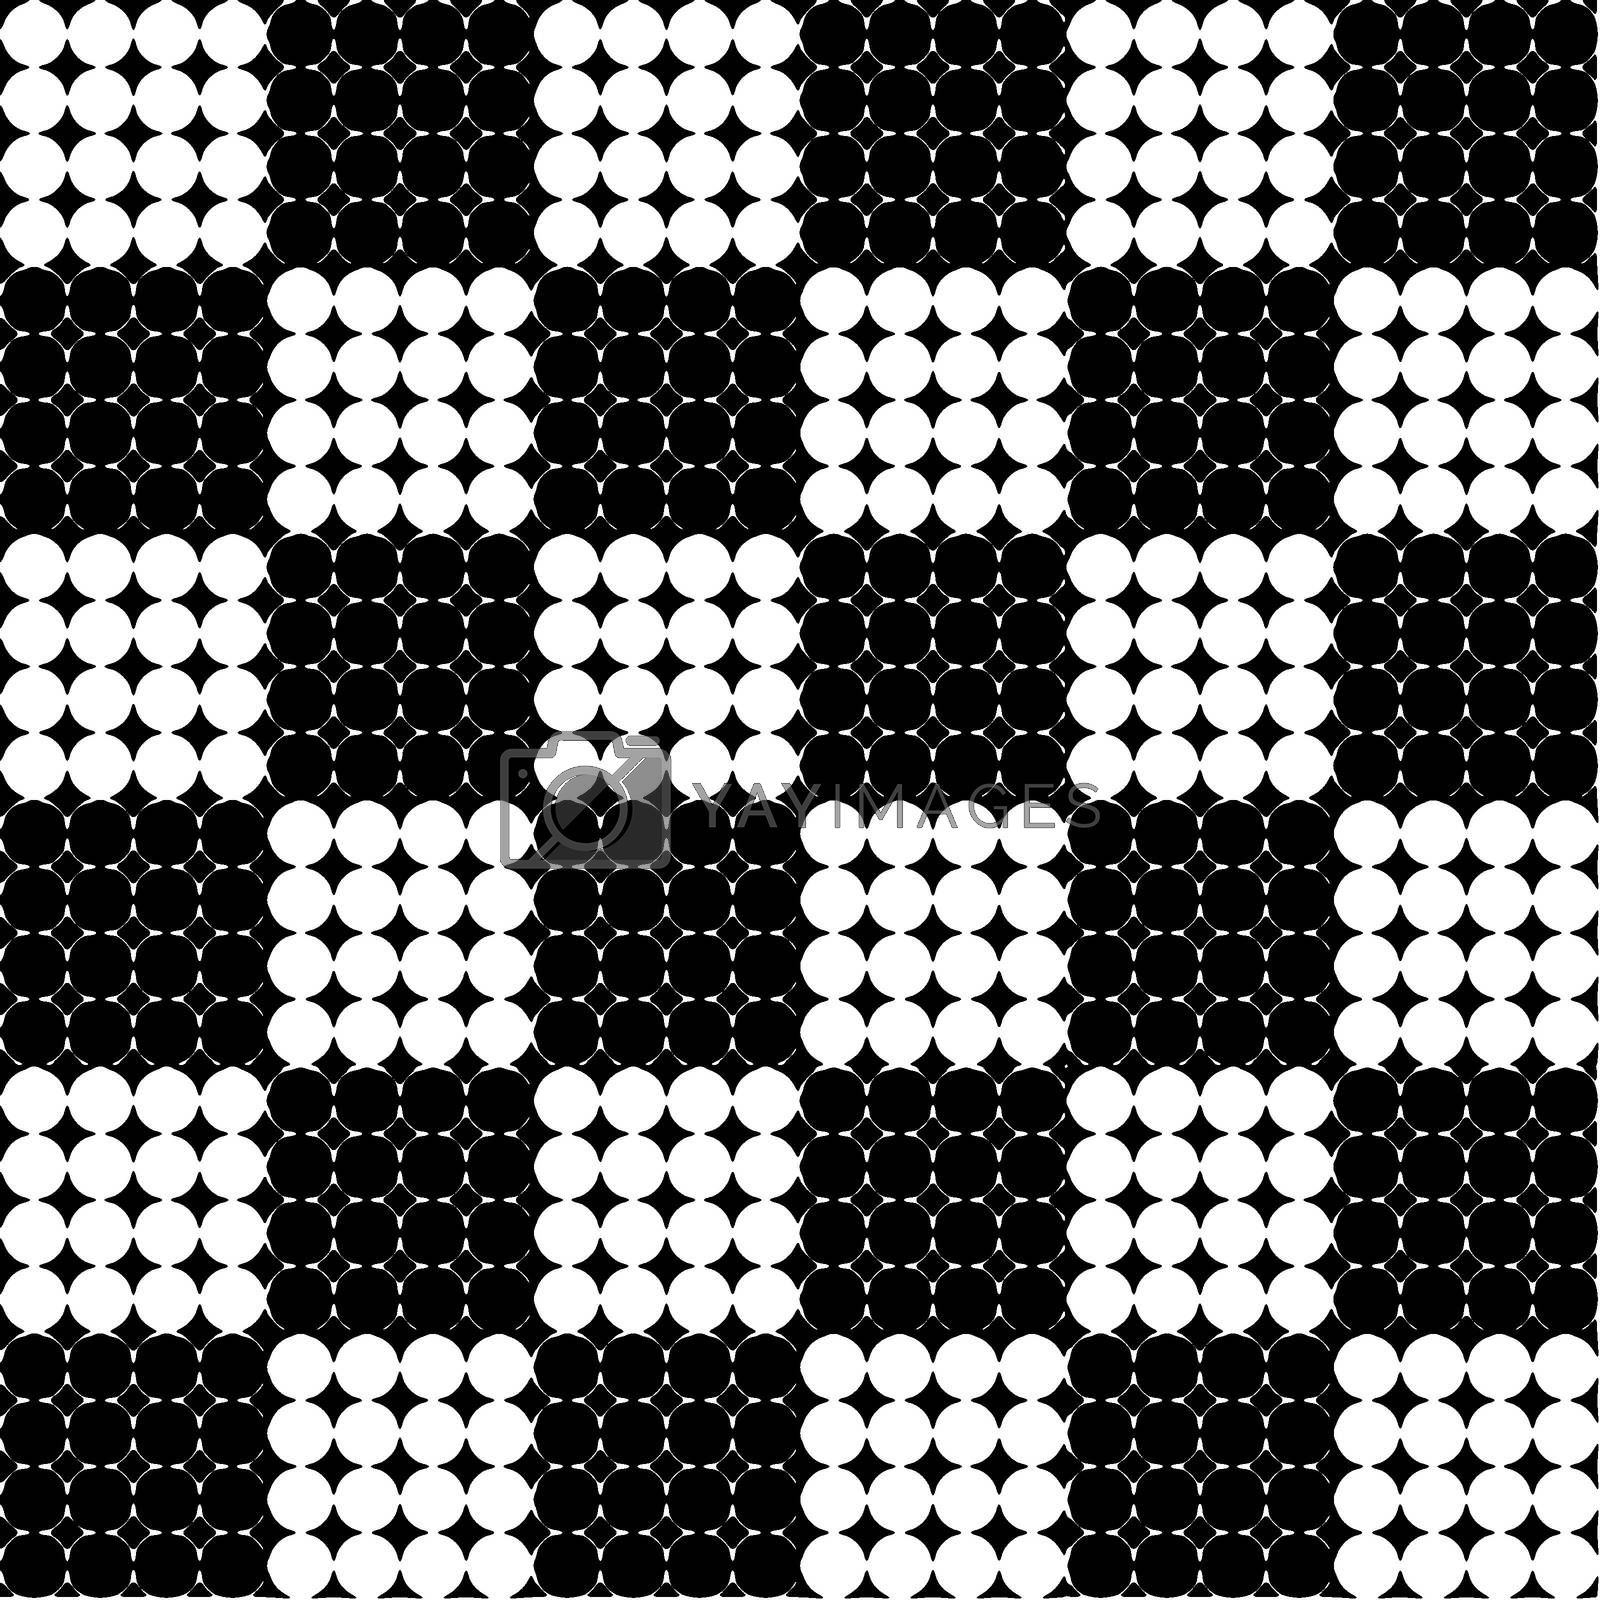 Royalty free image of Seamless geometric pattern with circles by Astronira